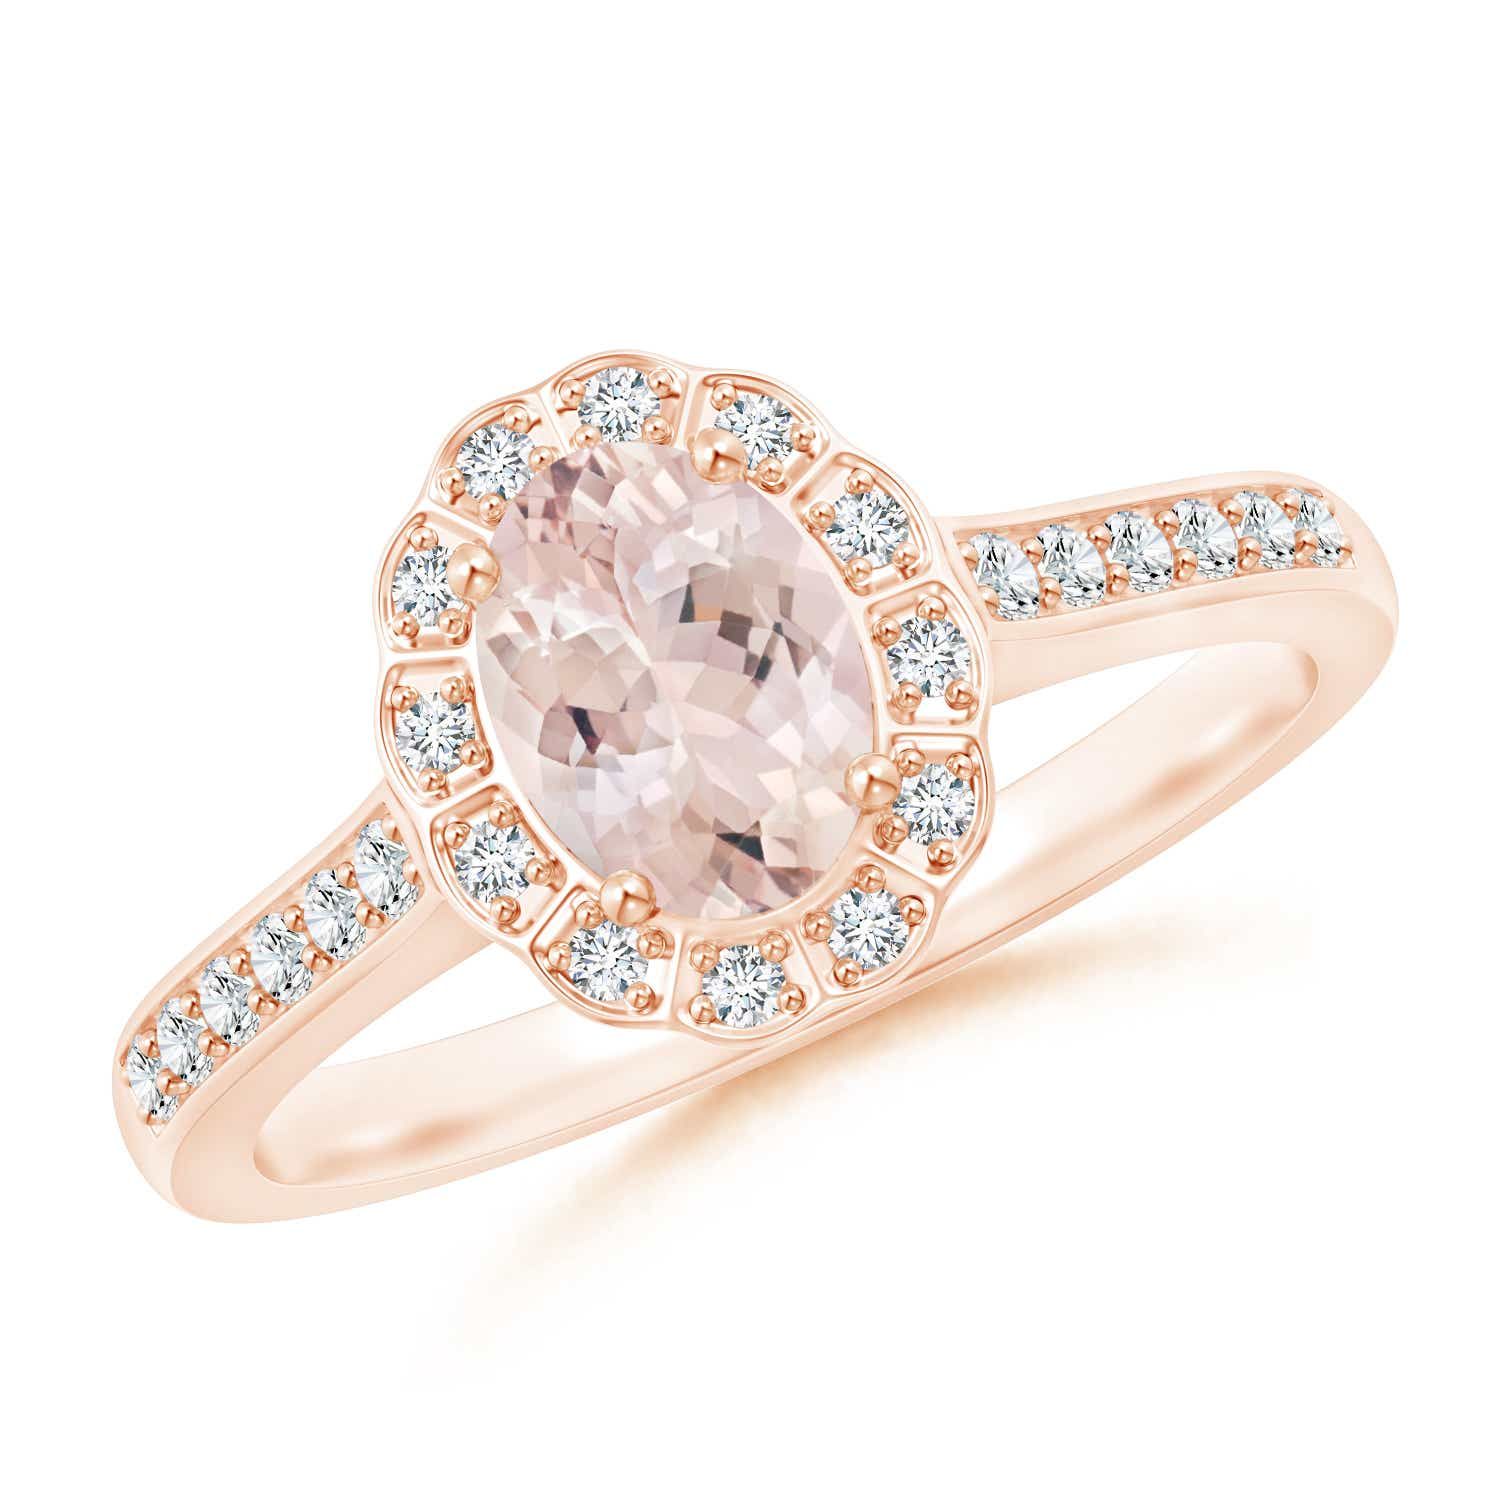 Angara Vintage Morganite Engagement Ring in Rose Gold